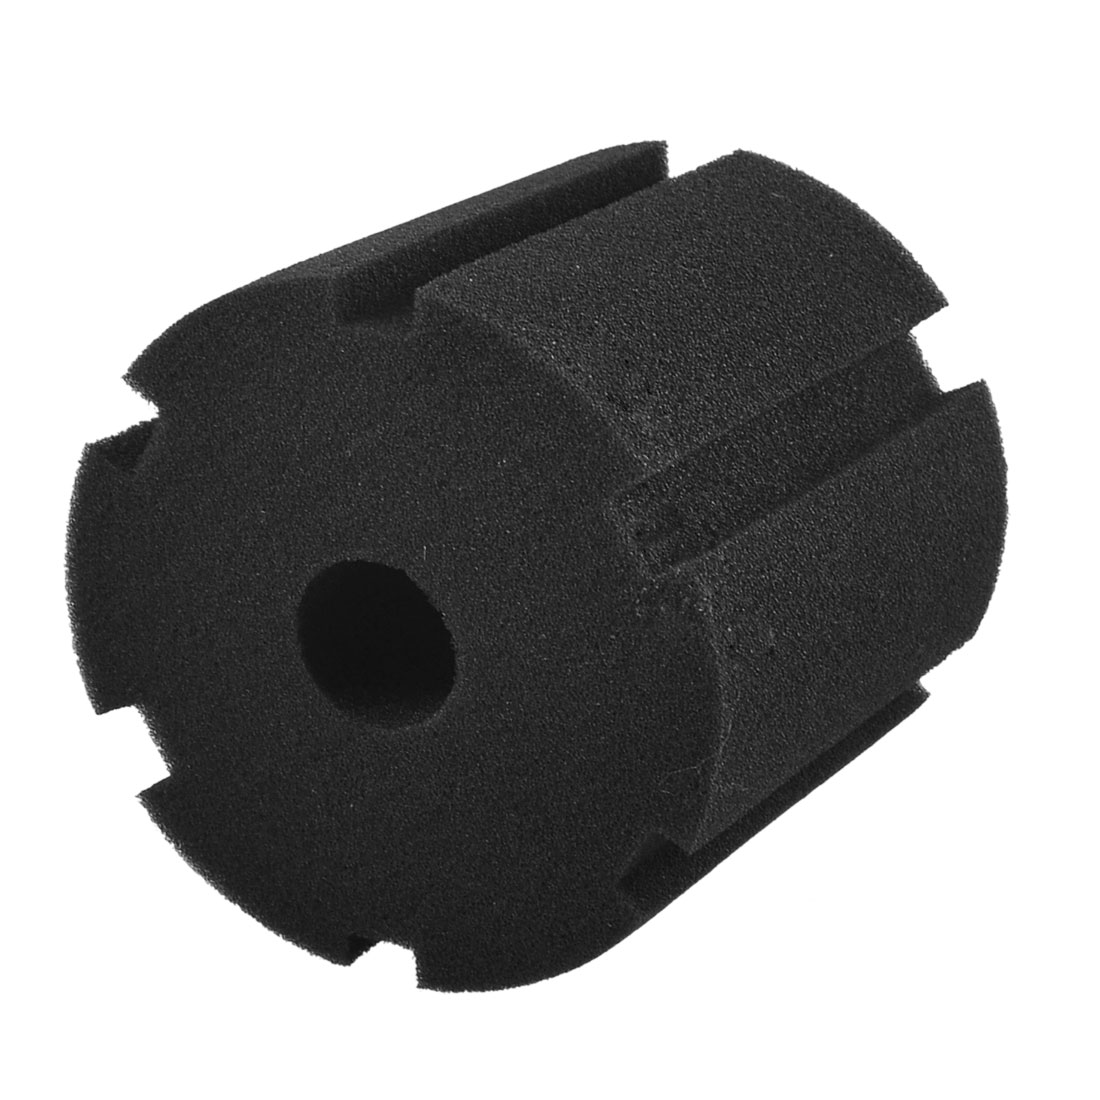 "Black 4.3"" Height Cylinder Sponge for Aquarium Water Filter"